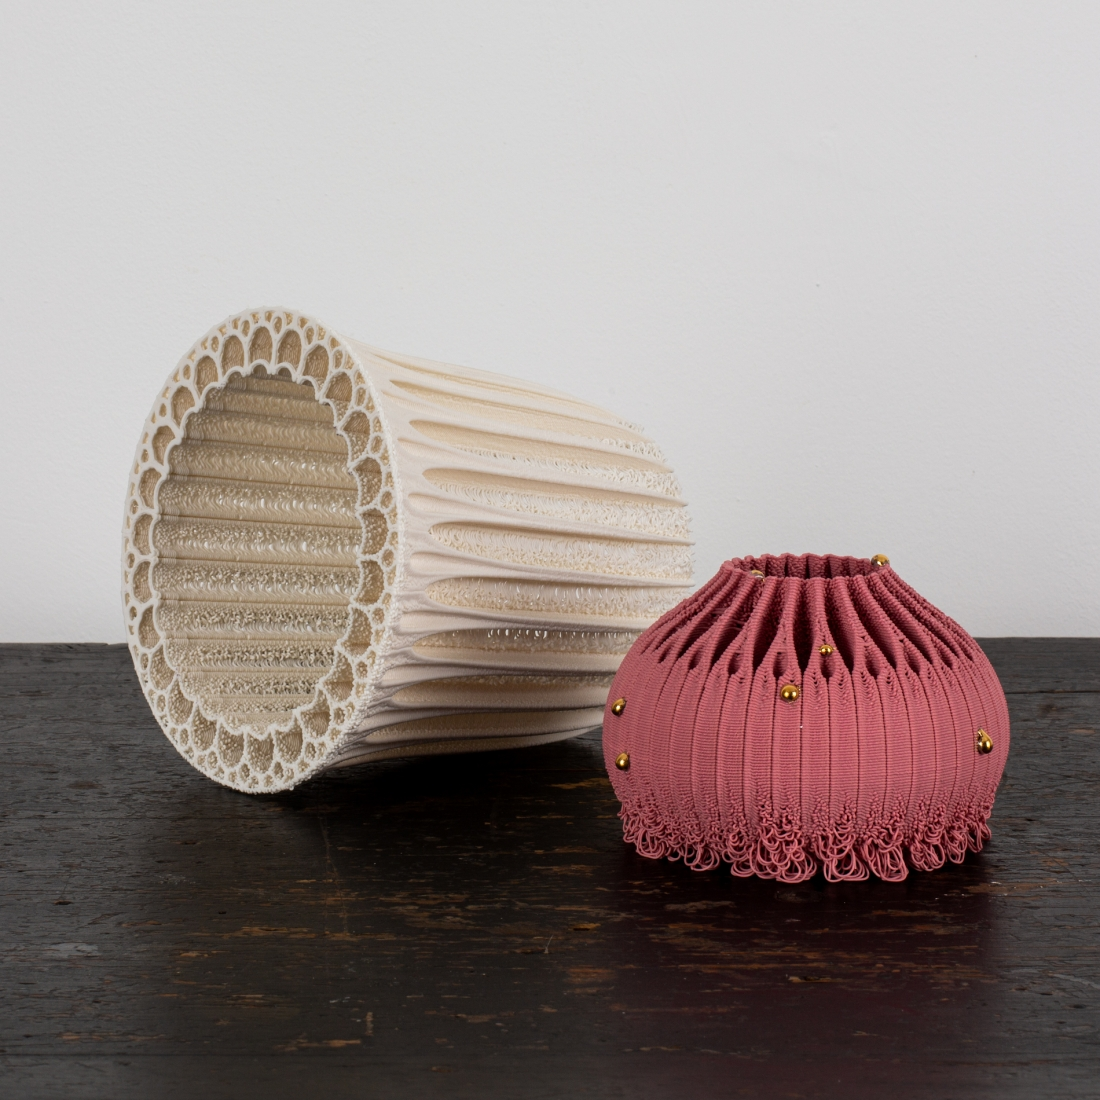 Nico Conti - collar vessel, white porcelain and sea urchin with gold and pink porcelain, 3D printed